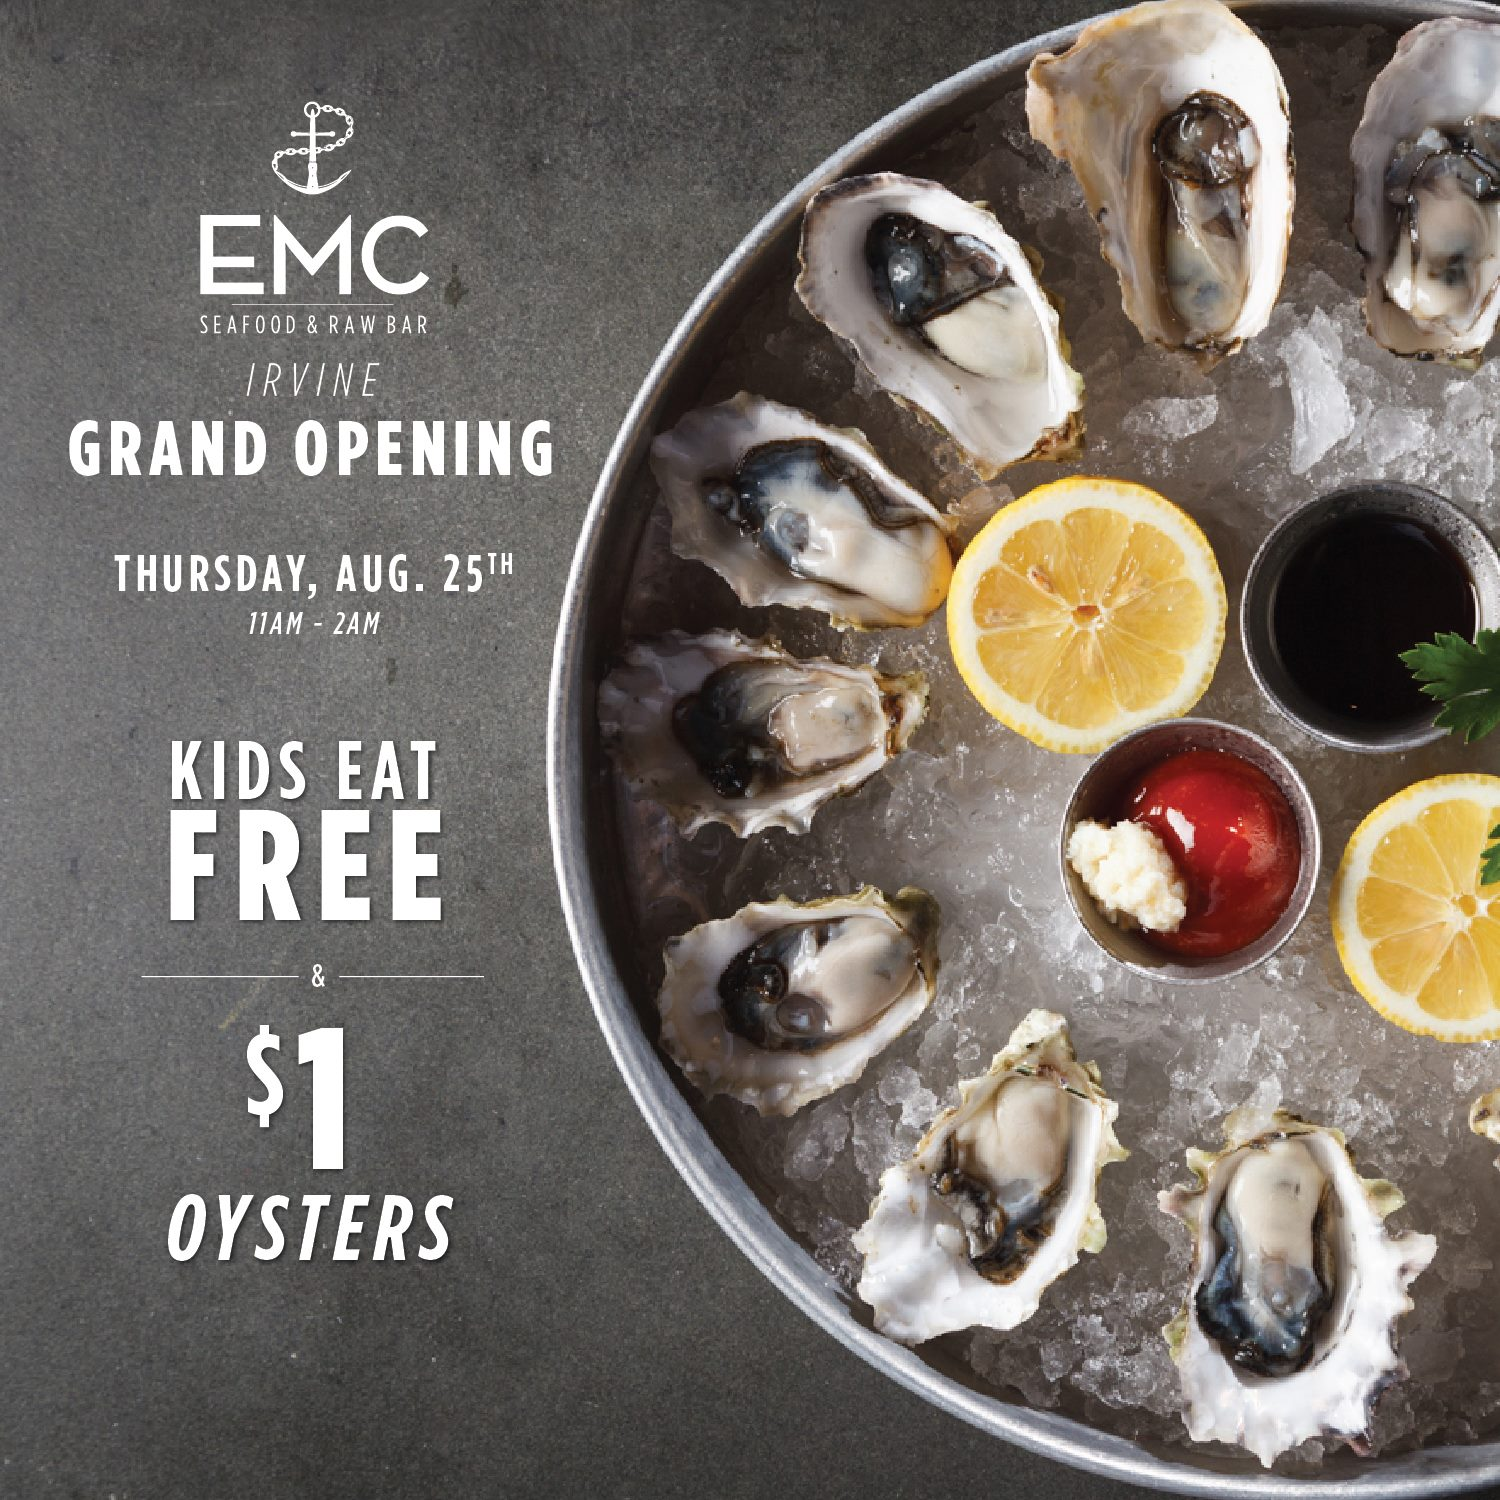 EMC SEAFOOD AND RAW BAR: GRAND OPENING IN IRVINE OFFERS $1 OYSTERS ON AUG 25